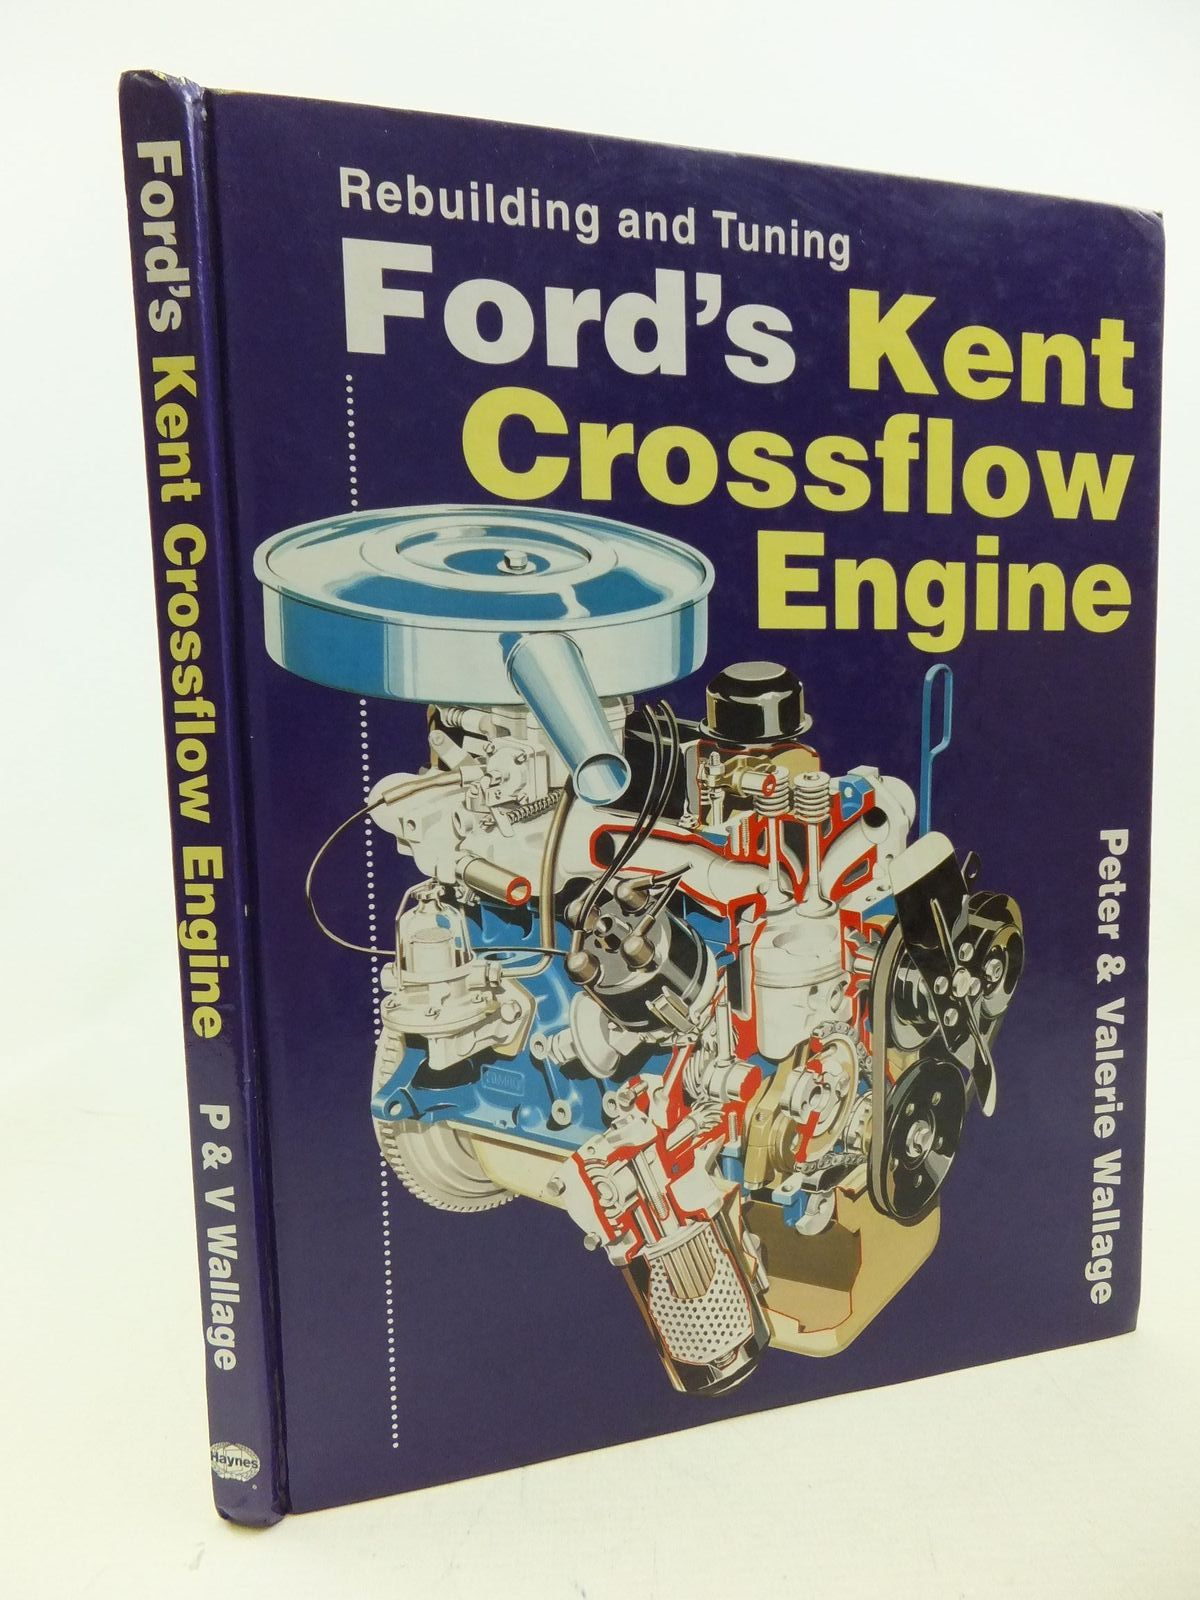 rebuilding and tuning ford s kent crossflow engine written by rh stellabooks com Ford 4 Cylinder Engines New Ford Boss Engine